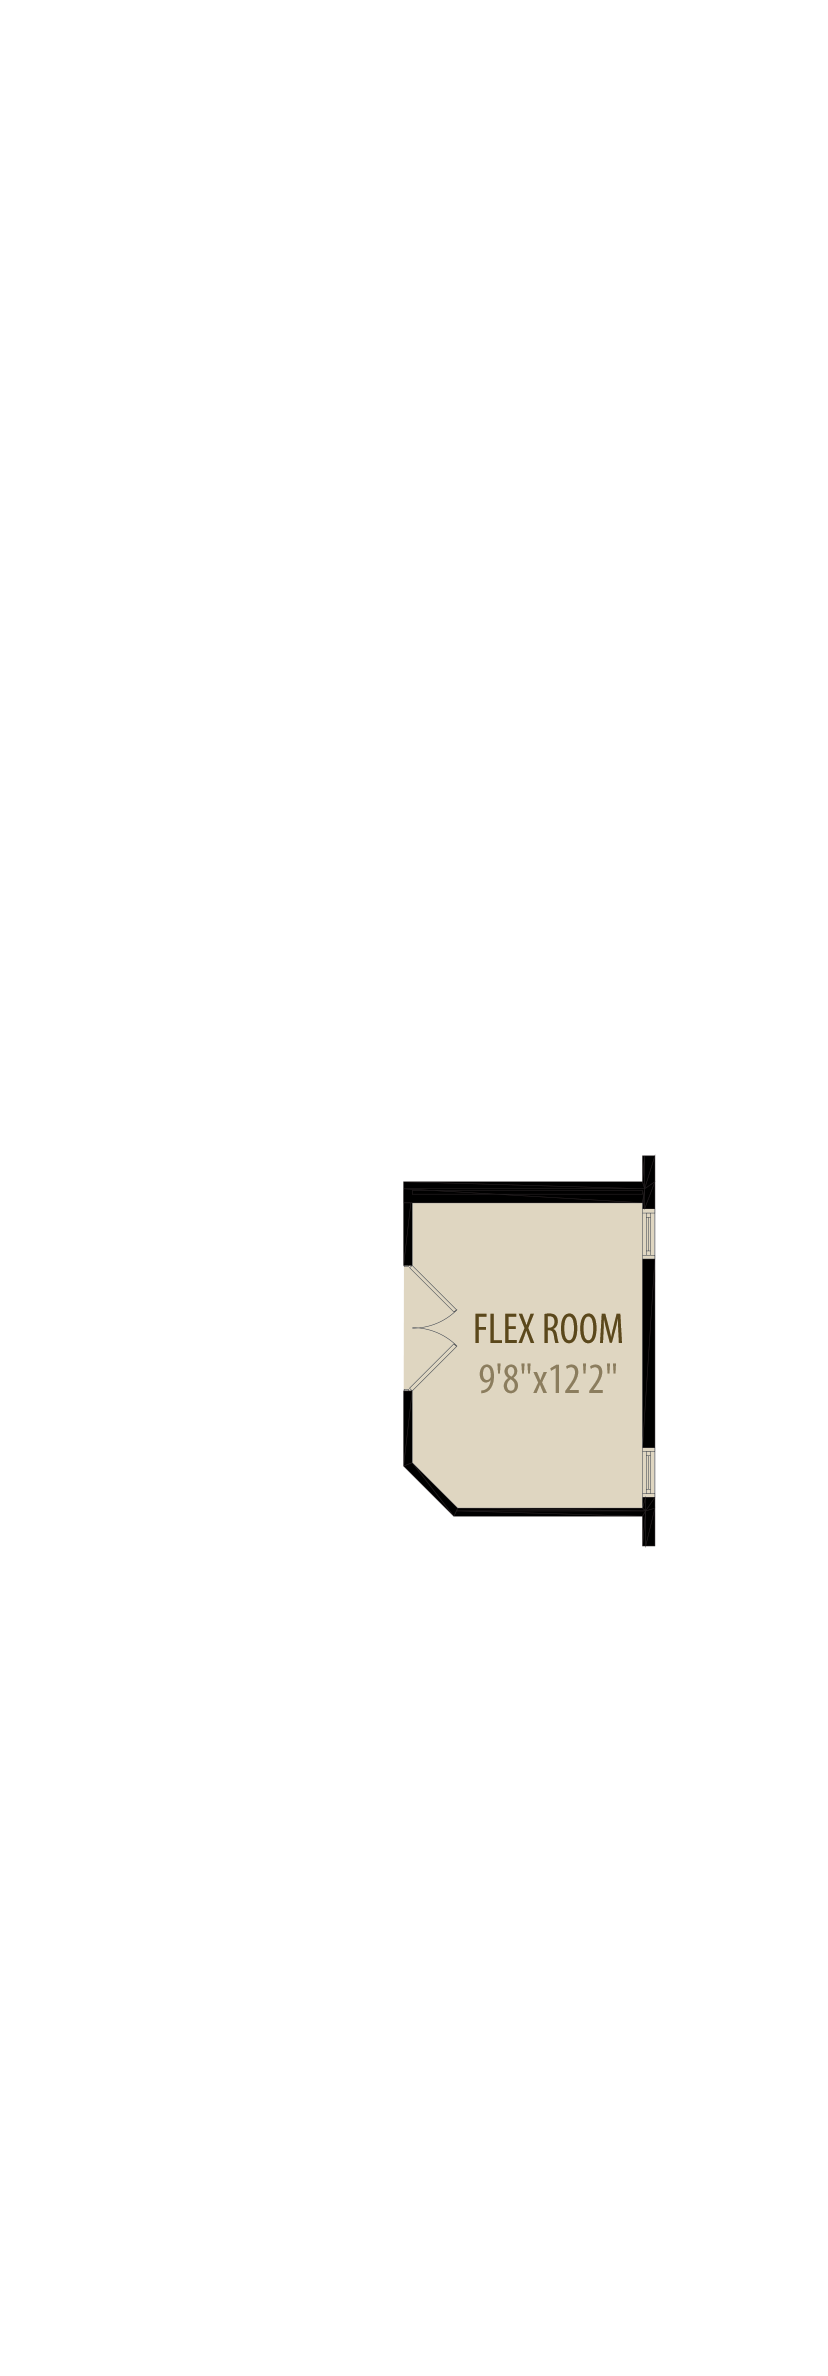 Enclosed Flex Room